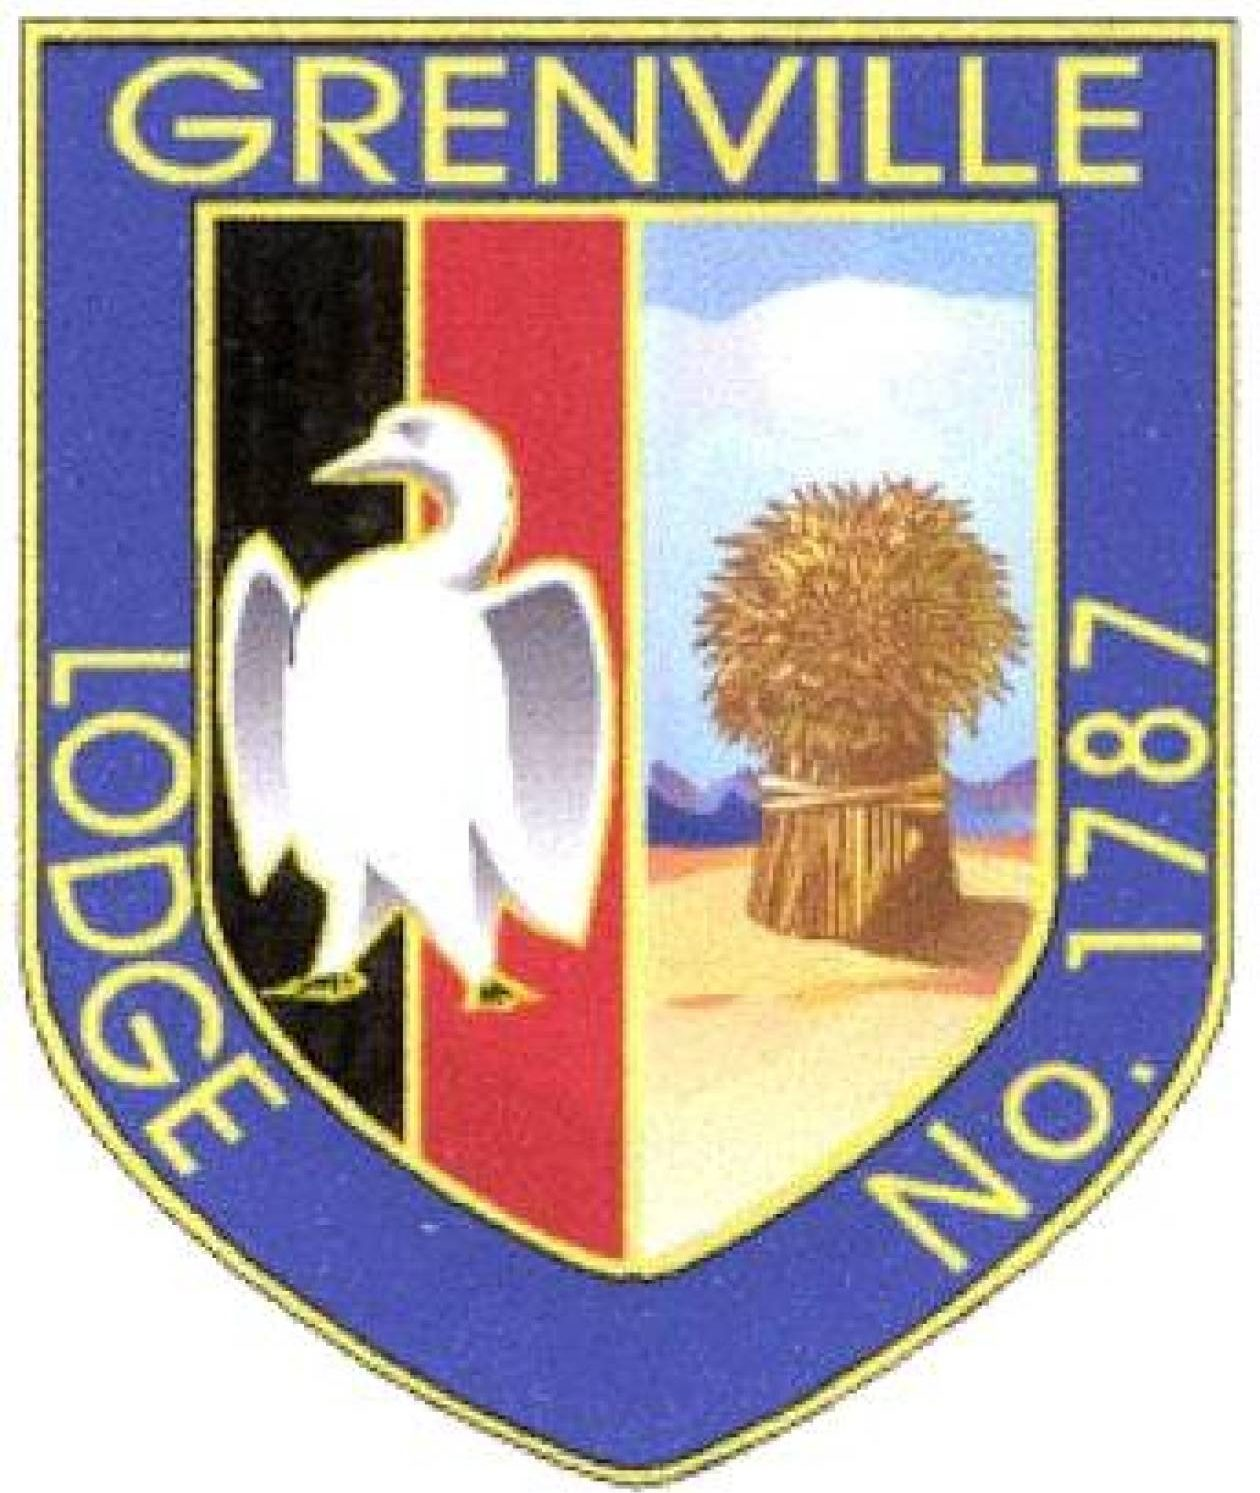 Grenville Lodge No. 1787